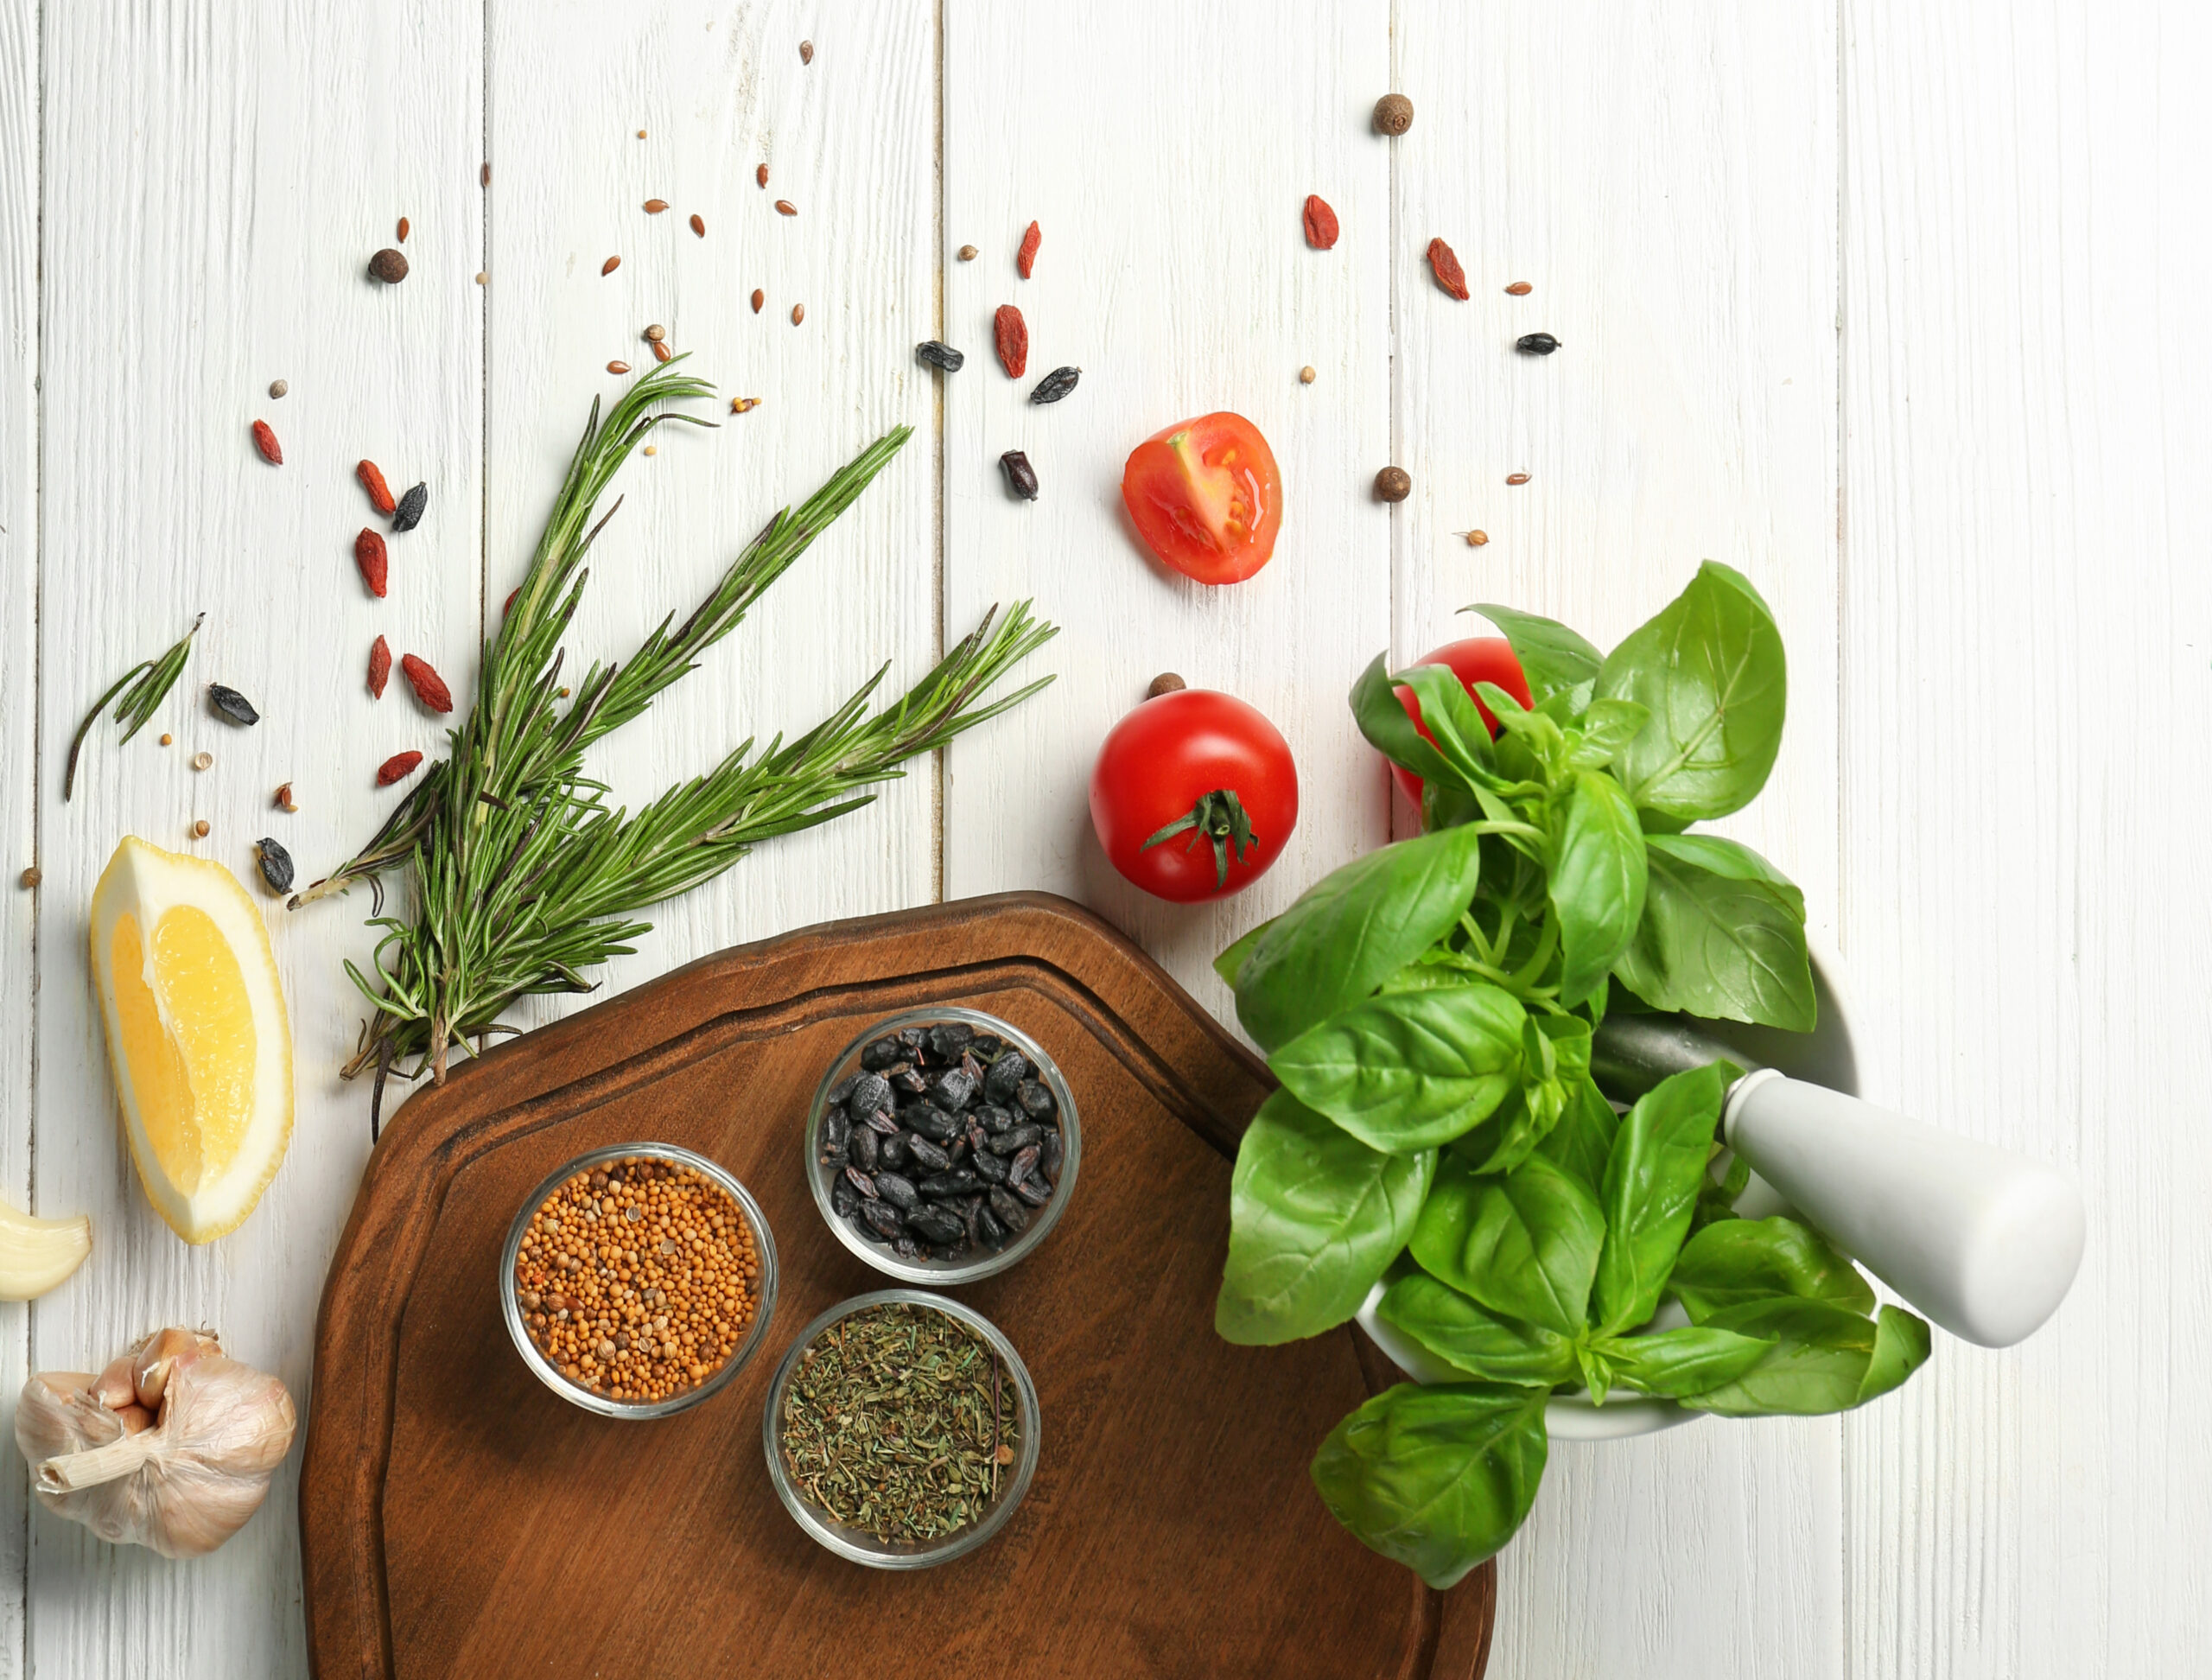 5 Herbs & Spices With Great Health Benefits